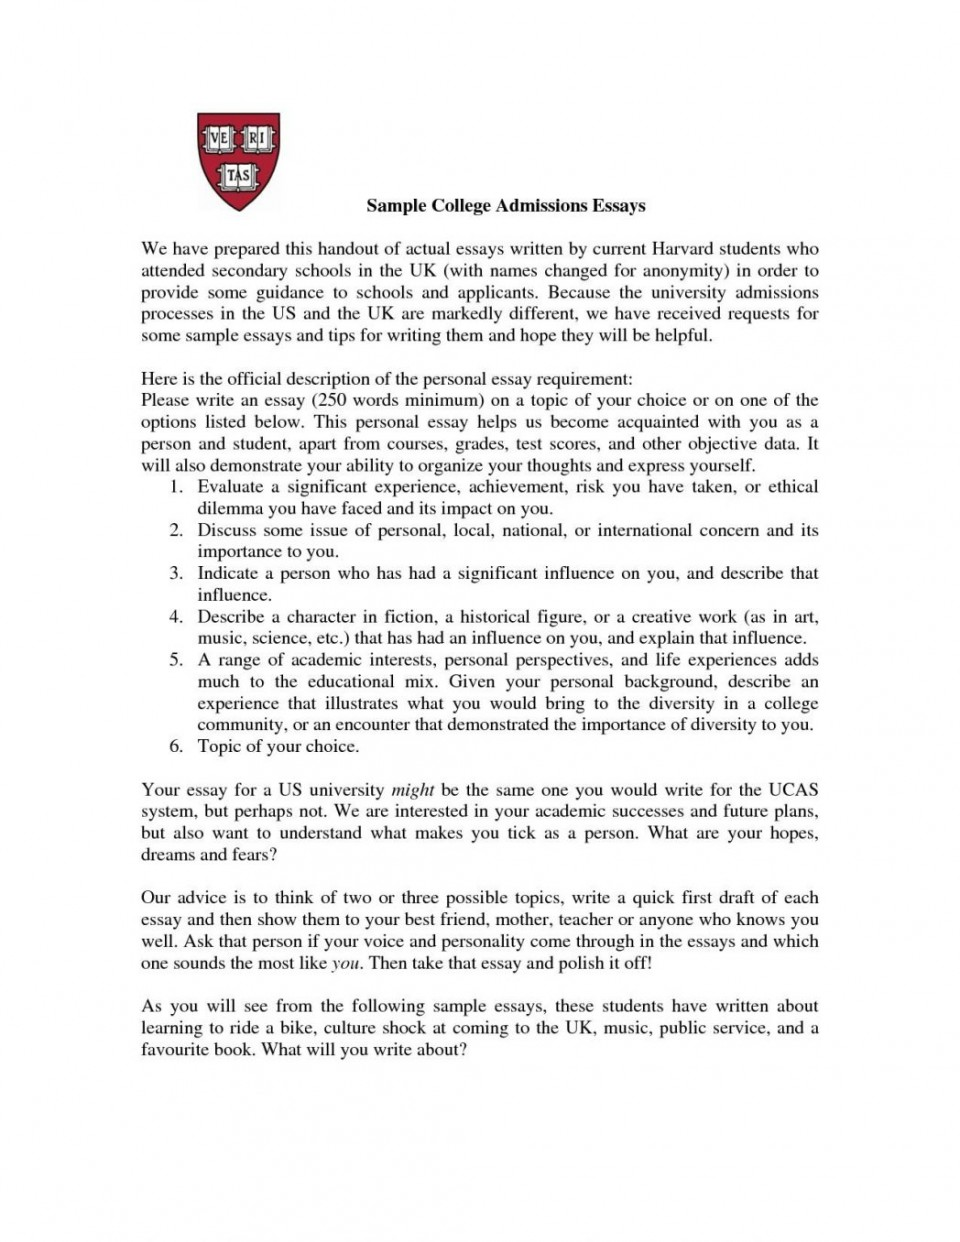 003 Common App Essays That Worked Harvard Essay Example Template Design College Examples Collection Of Free Application Transfer Topic Inside Words Writing Workshop Phenomenal 960